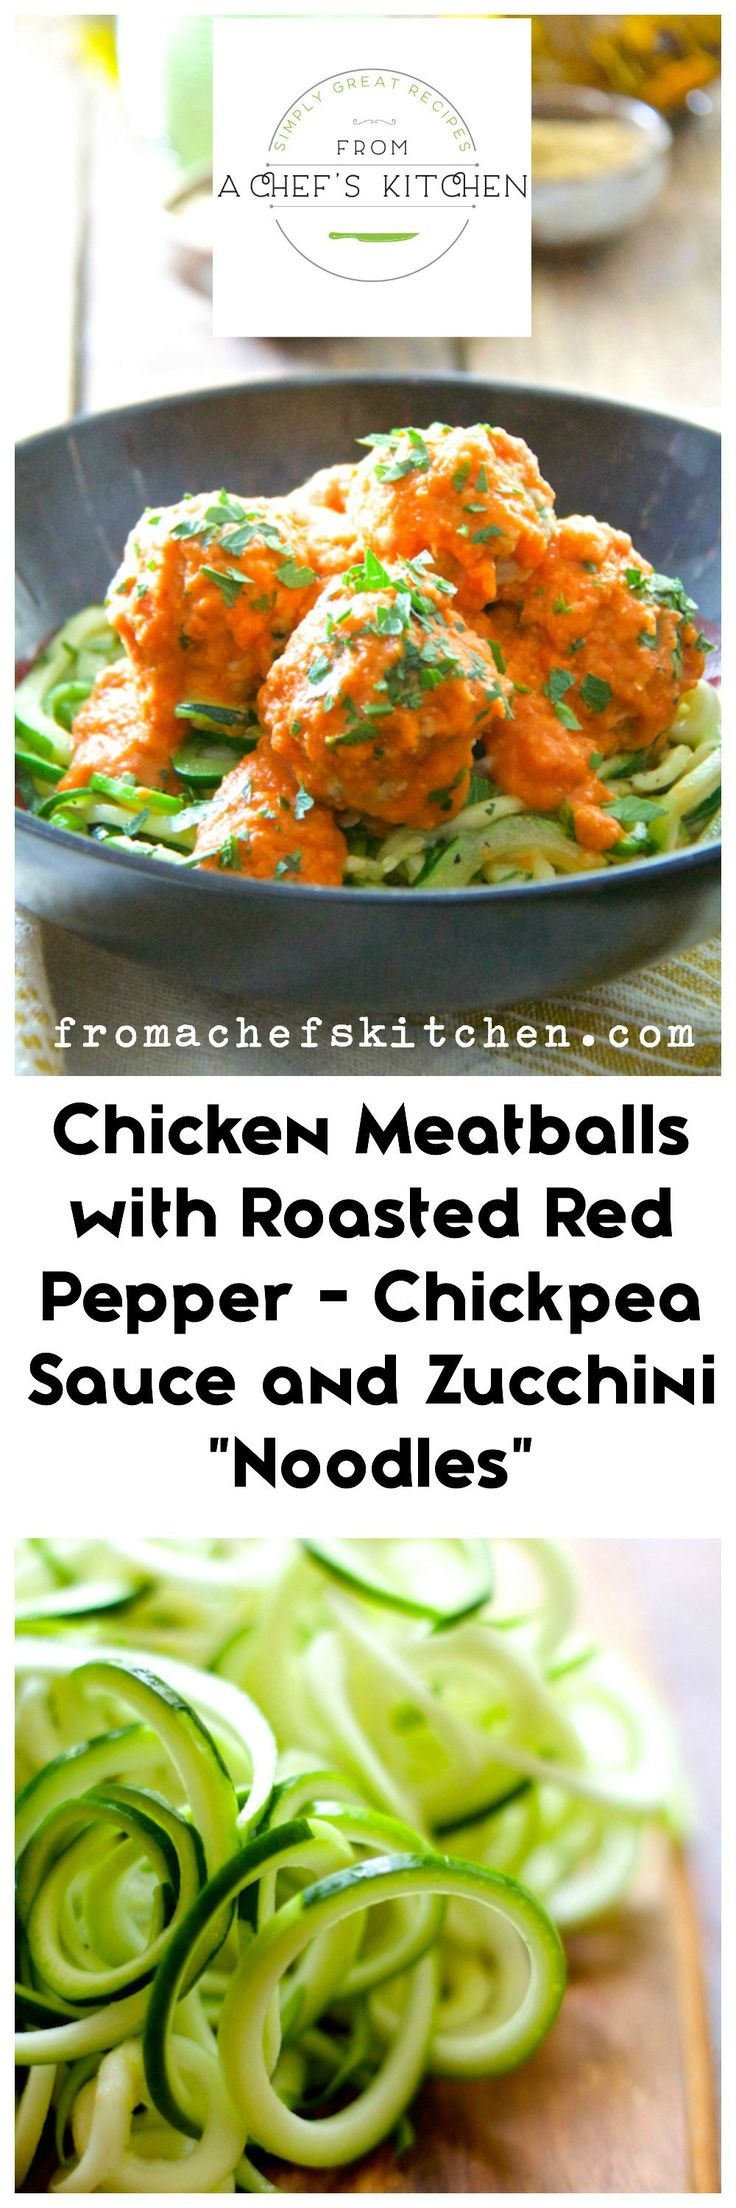 ... Dinner Ideas on Pinterest | Zucchini noodles, Freezers and Mac cheese